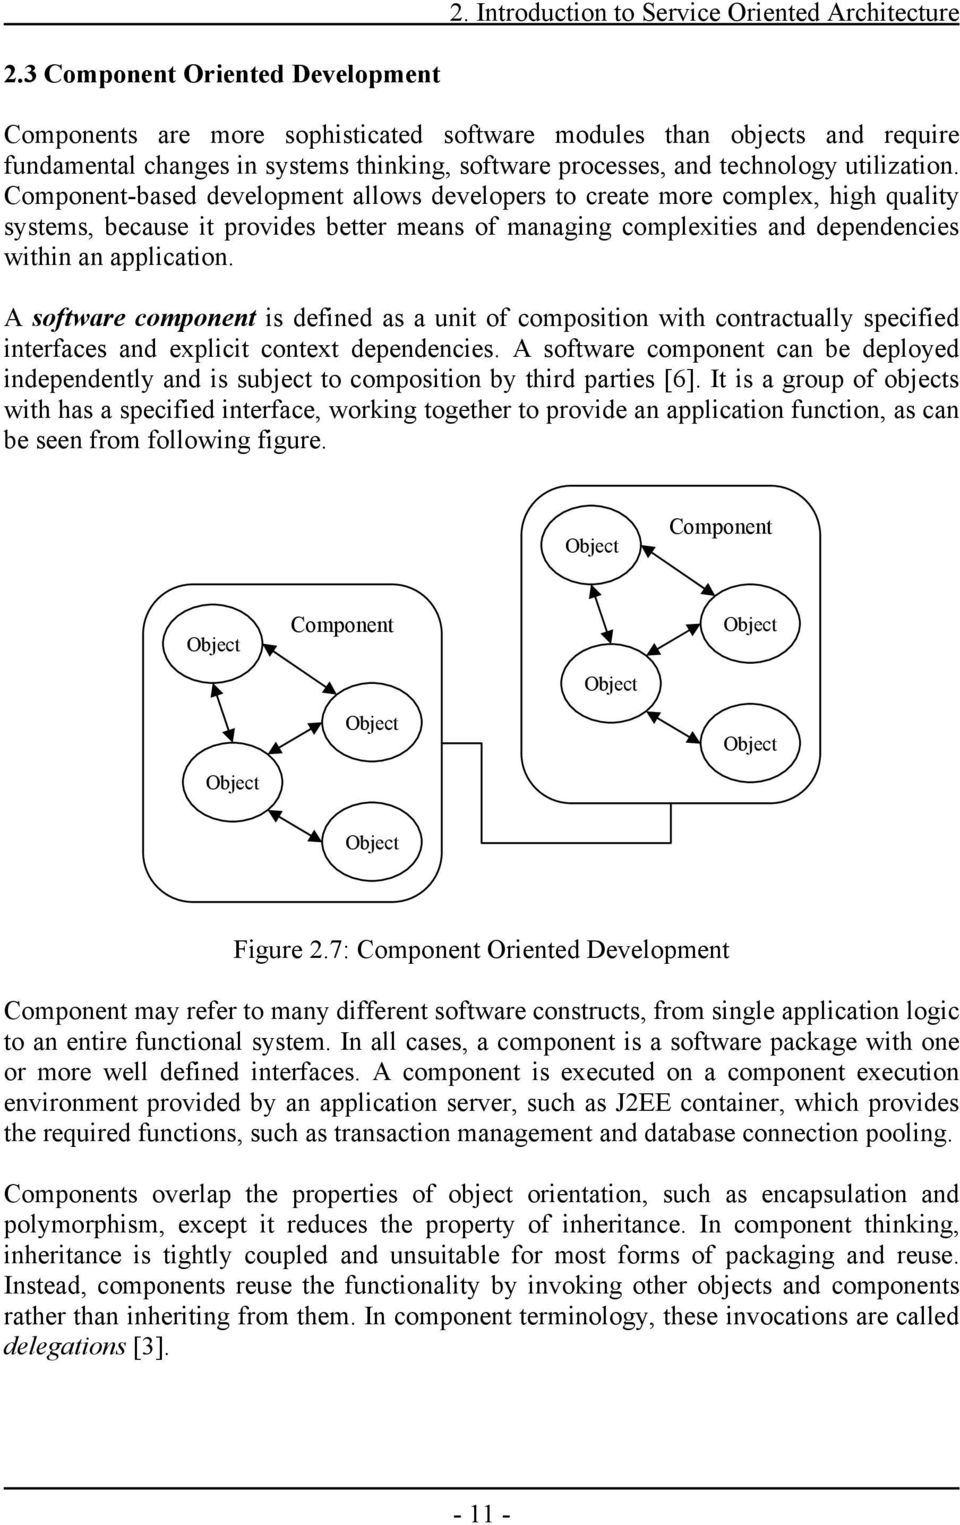 Component-based development allows developers to create more complex, high quality systems, because it provides better means of managing complexities and dependencies within an application.